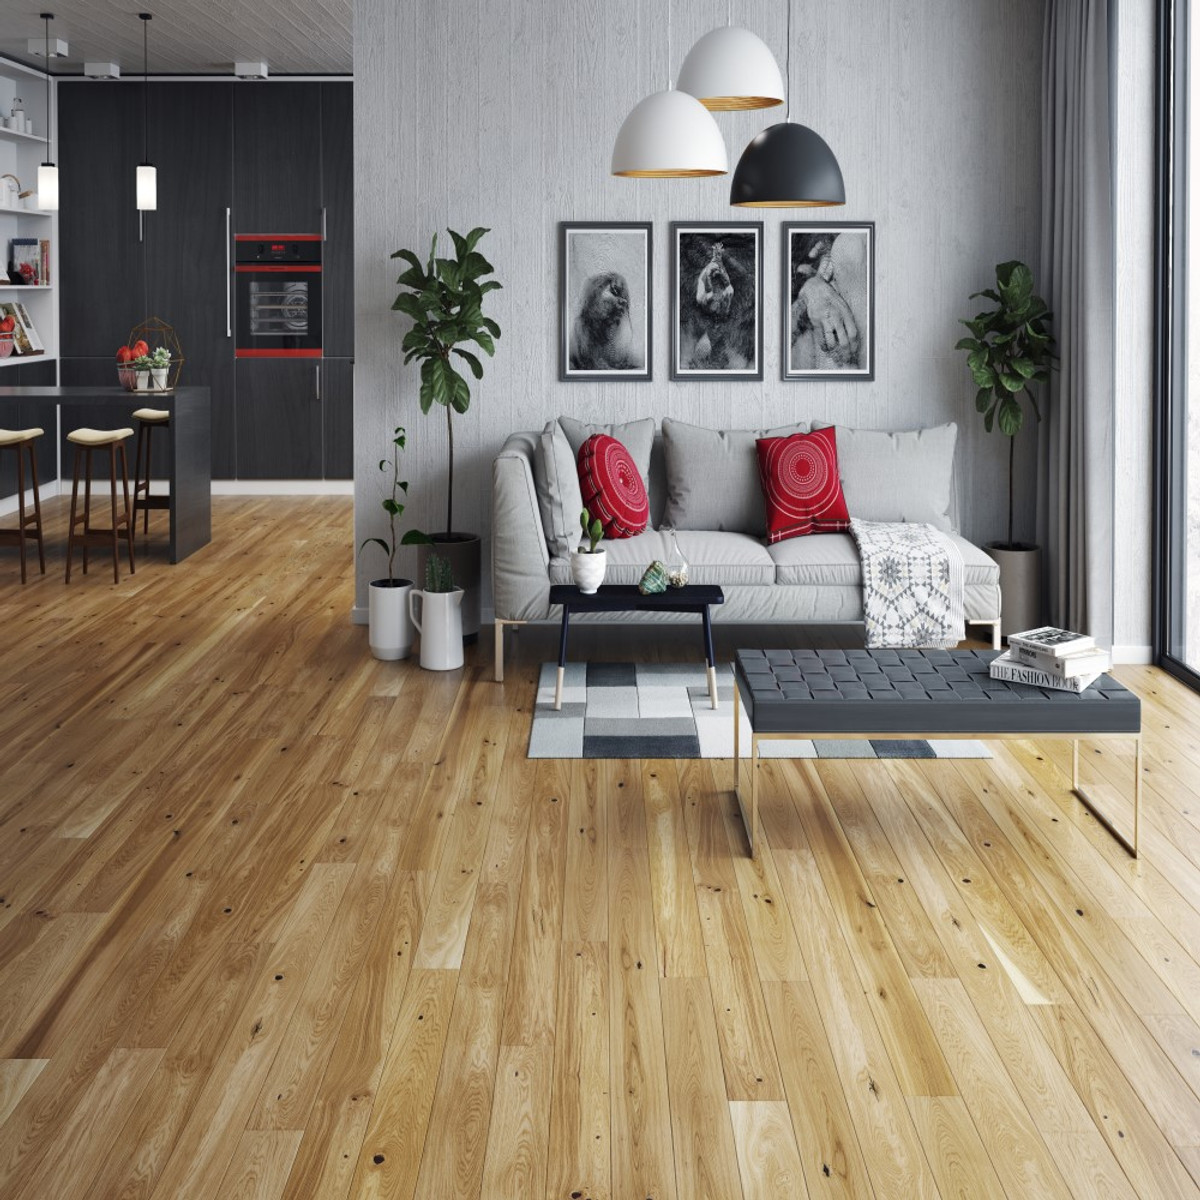 Tuscany Country Oak Lacquered Engineered Wood Flooring (Per Pack 0.99M²)